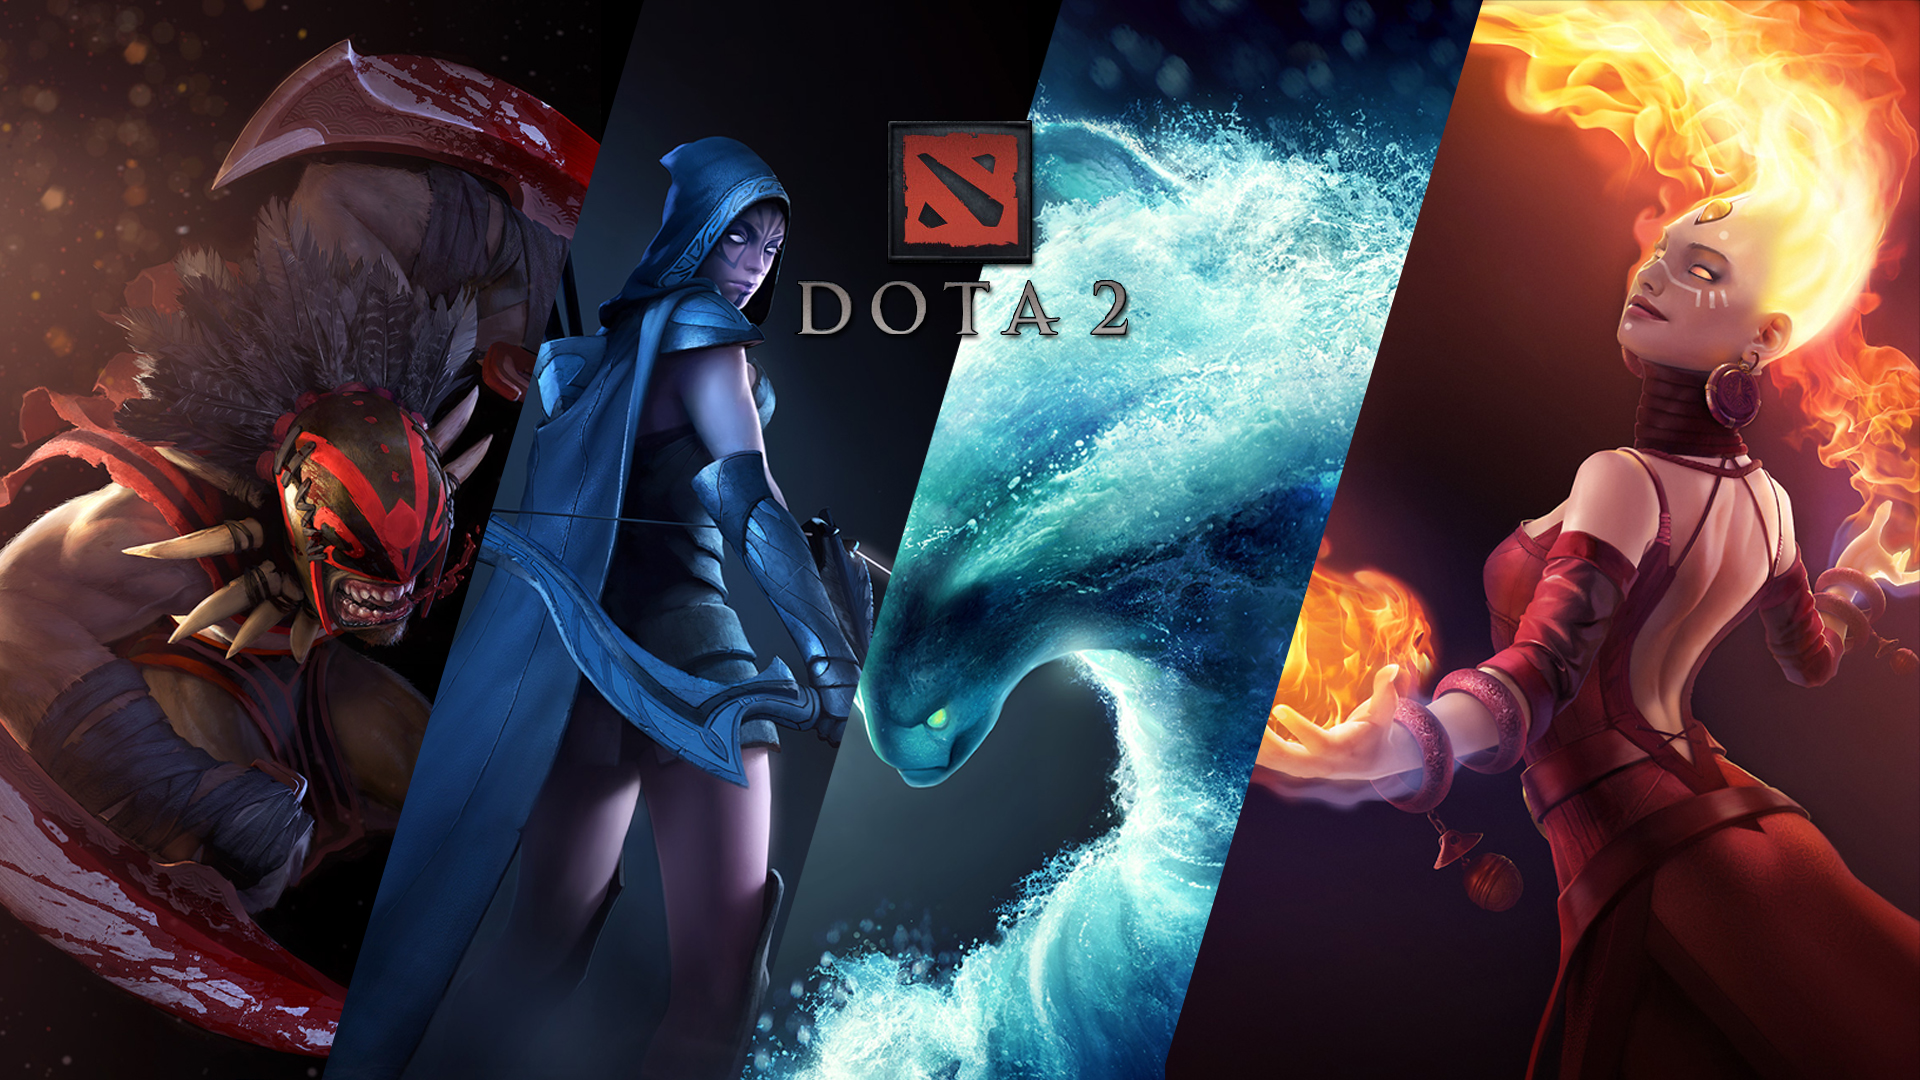 Comienza The International 2016 Dota 2